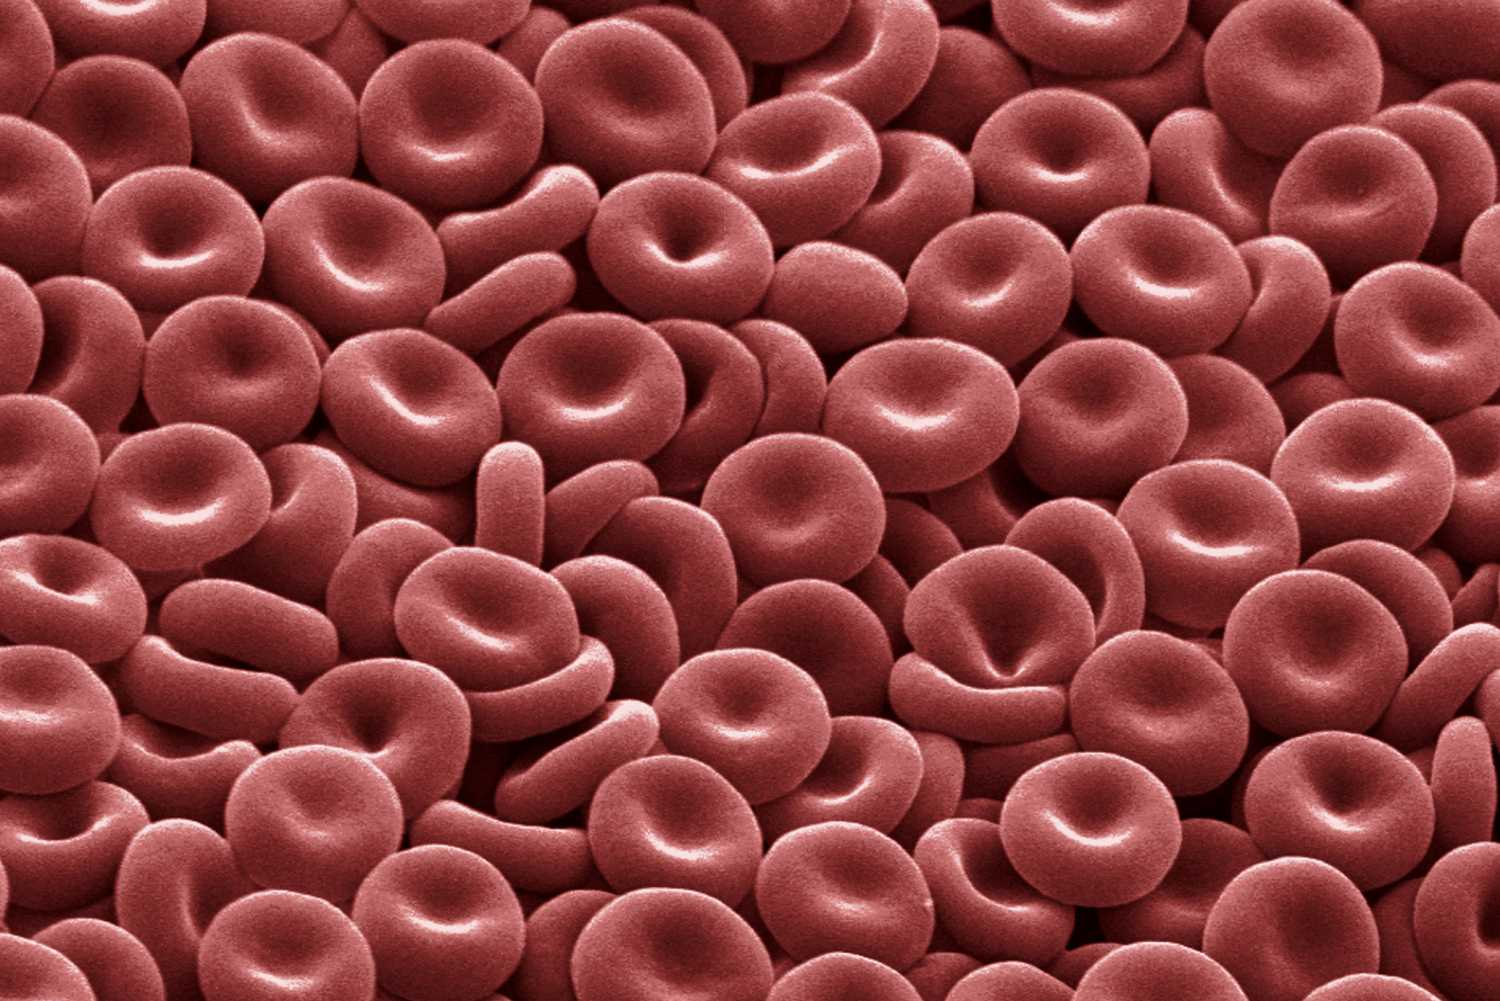 Red Blood Cells Function And Structure